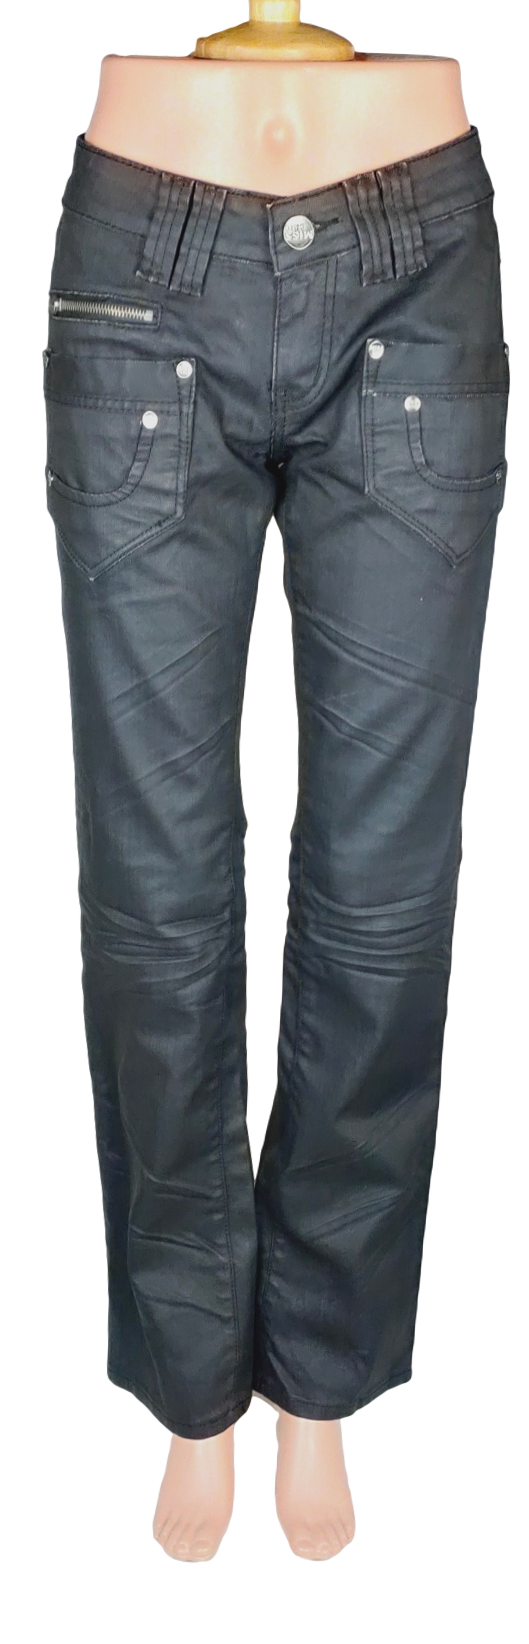 Jean Miss Chic -Taille 40